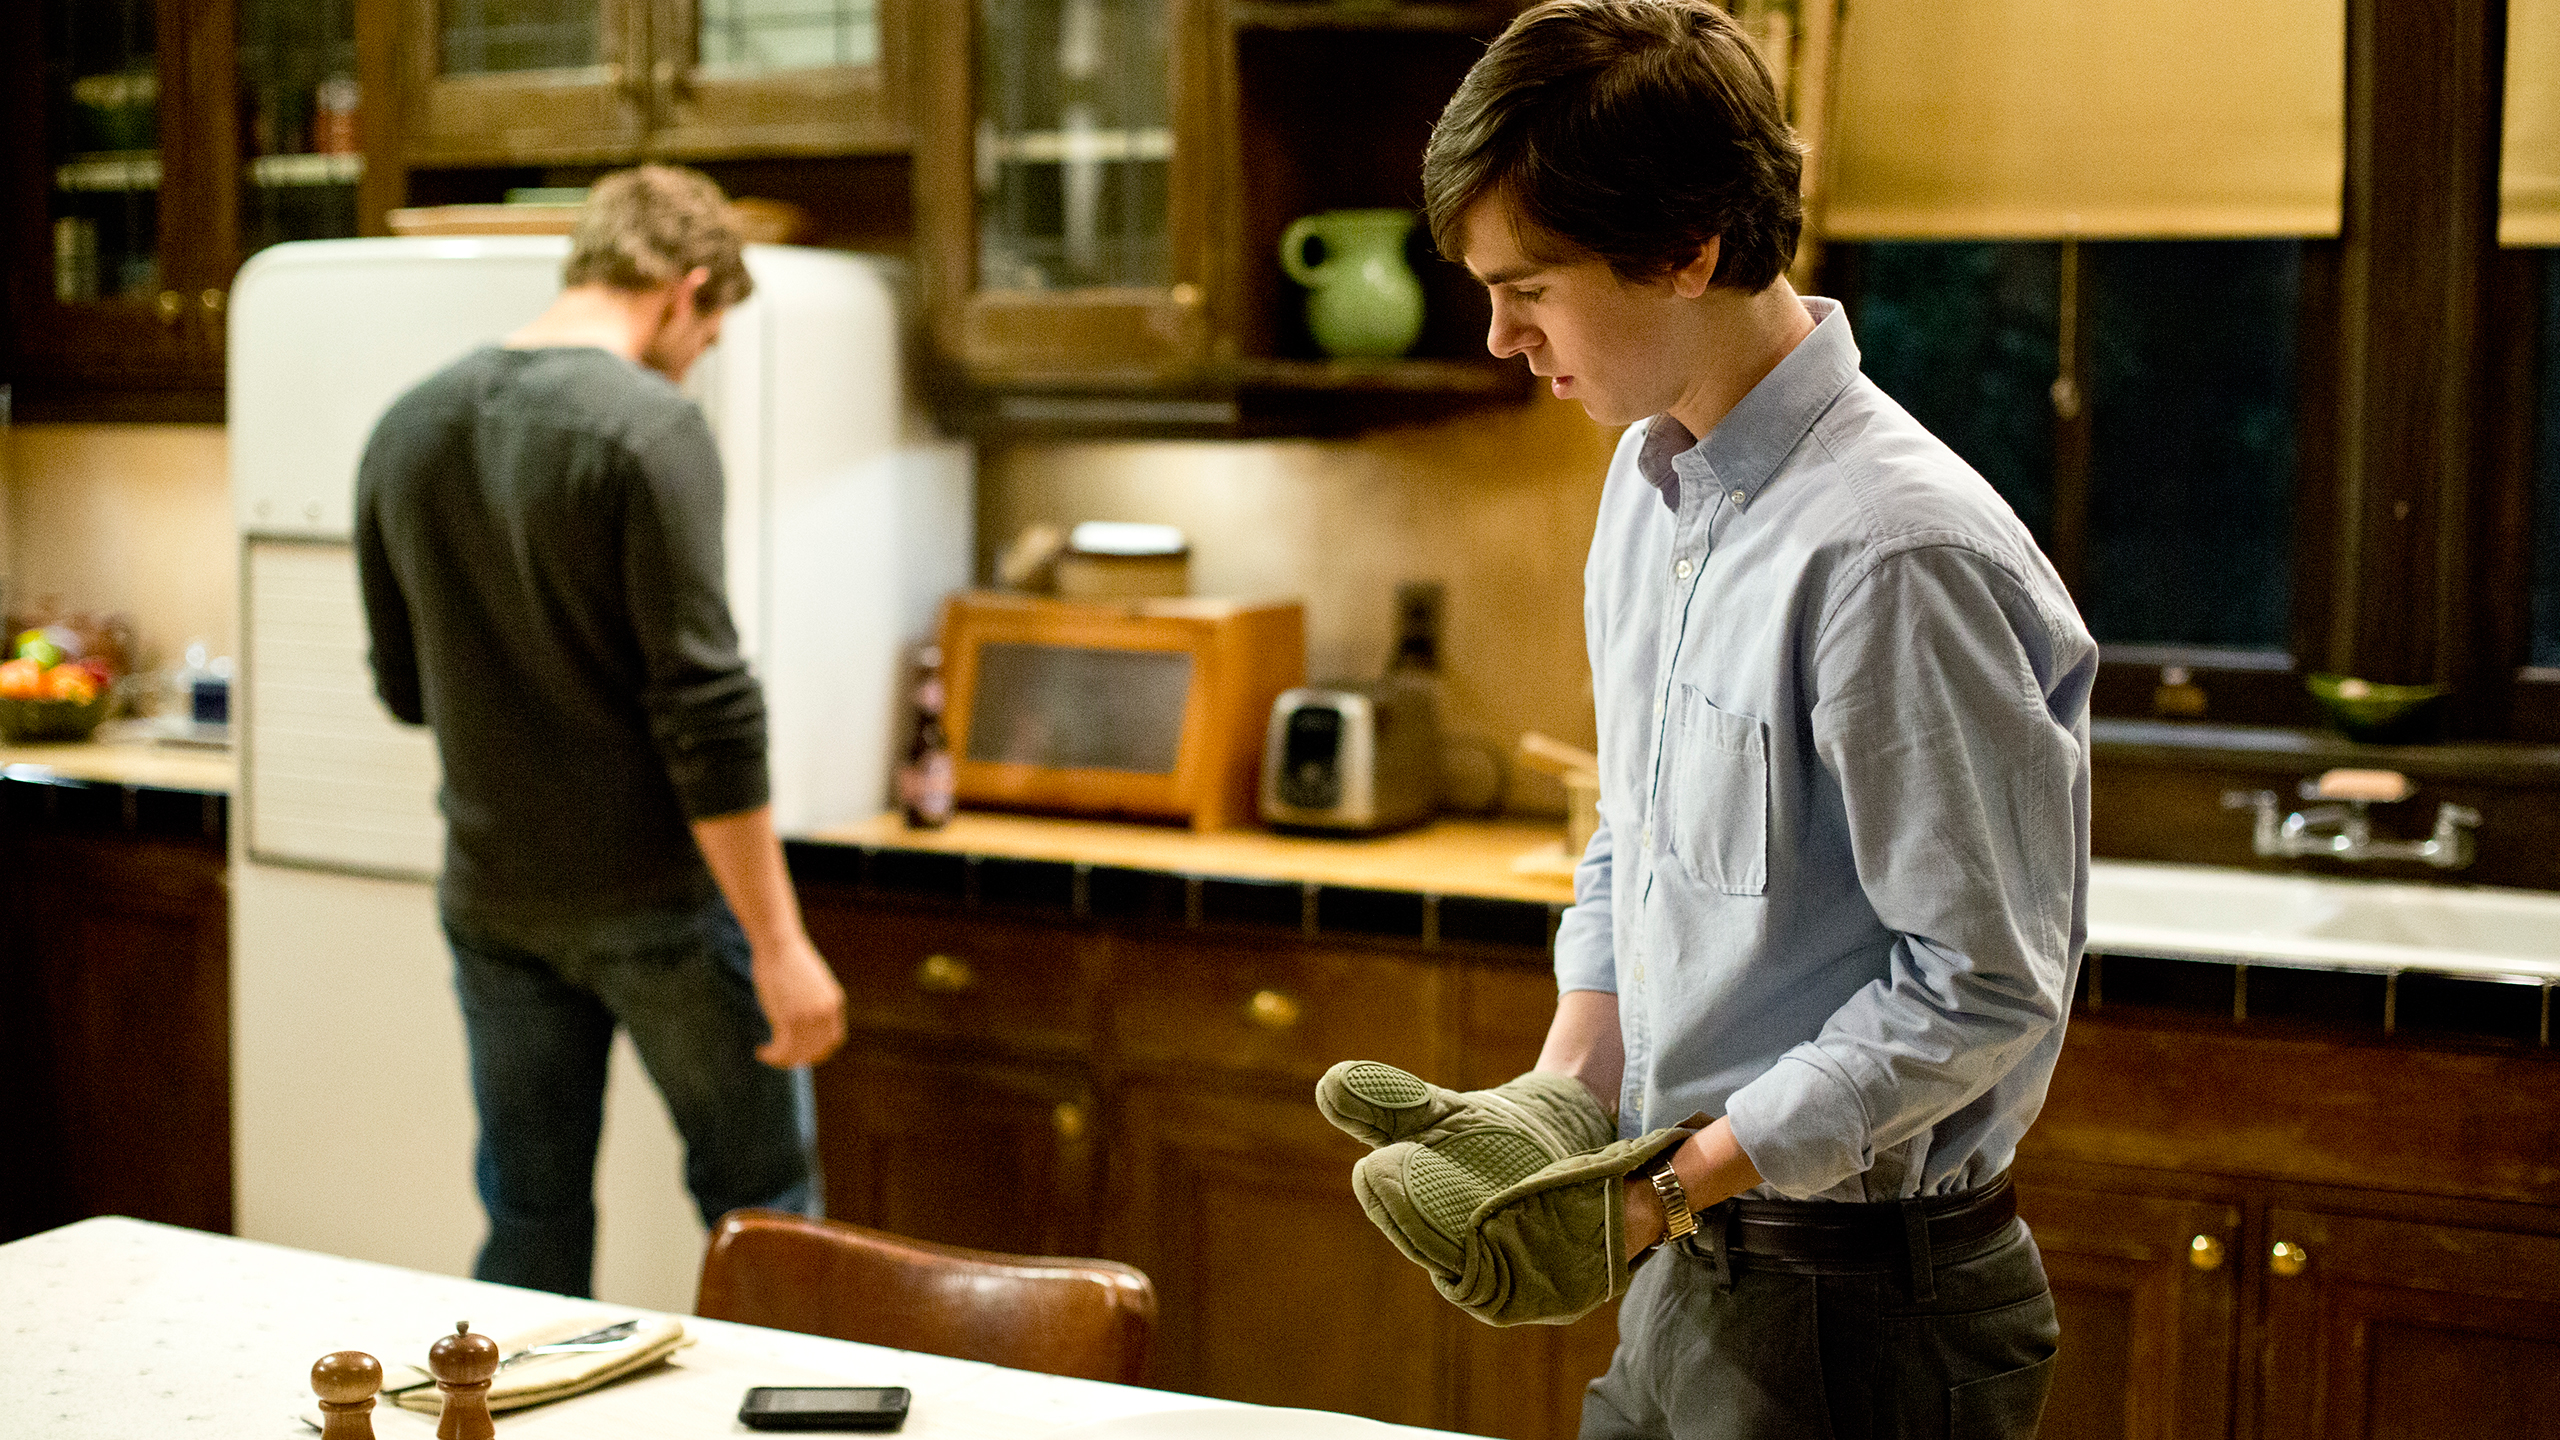 File:18-norman-bates-notices-dylans-phone-ringing.jpg